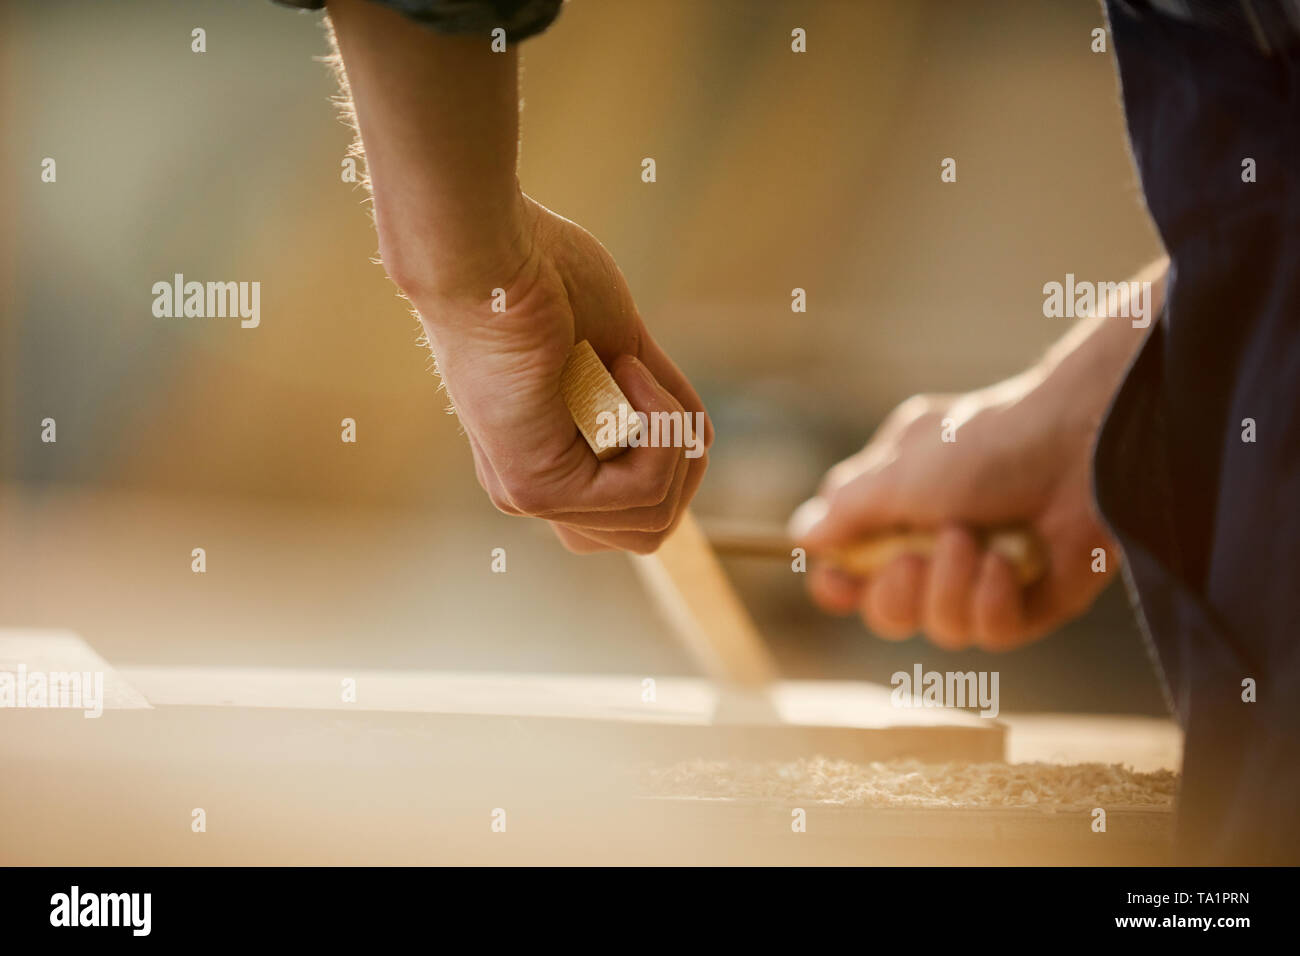 Close up of unrecognizable carpenter carving wood while working in joinery lit by sunlight, copy space - Stock Image